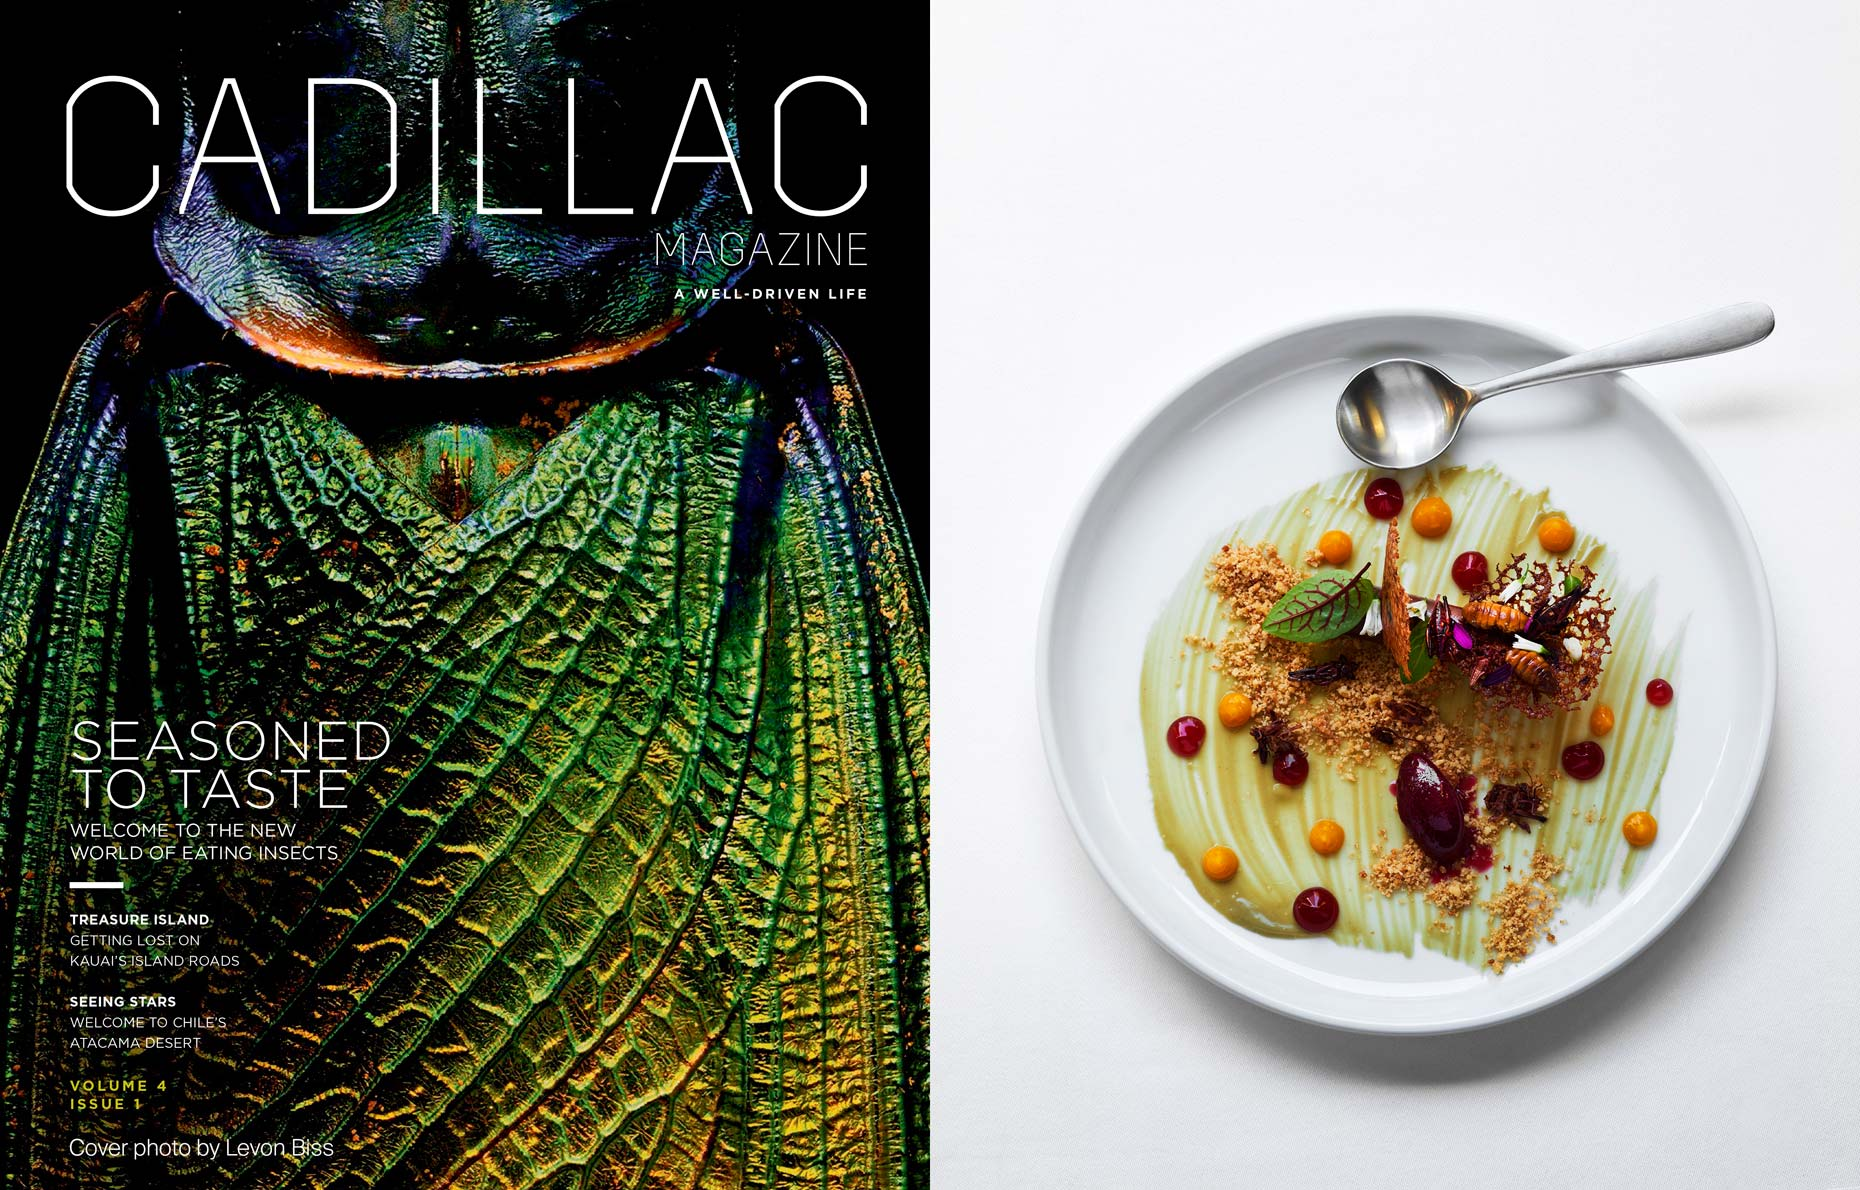 Cadillac_Magazine_Edible_Insects_Adrian_Mueller_01